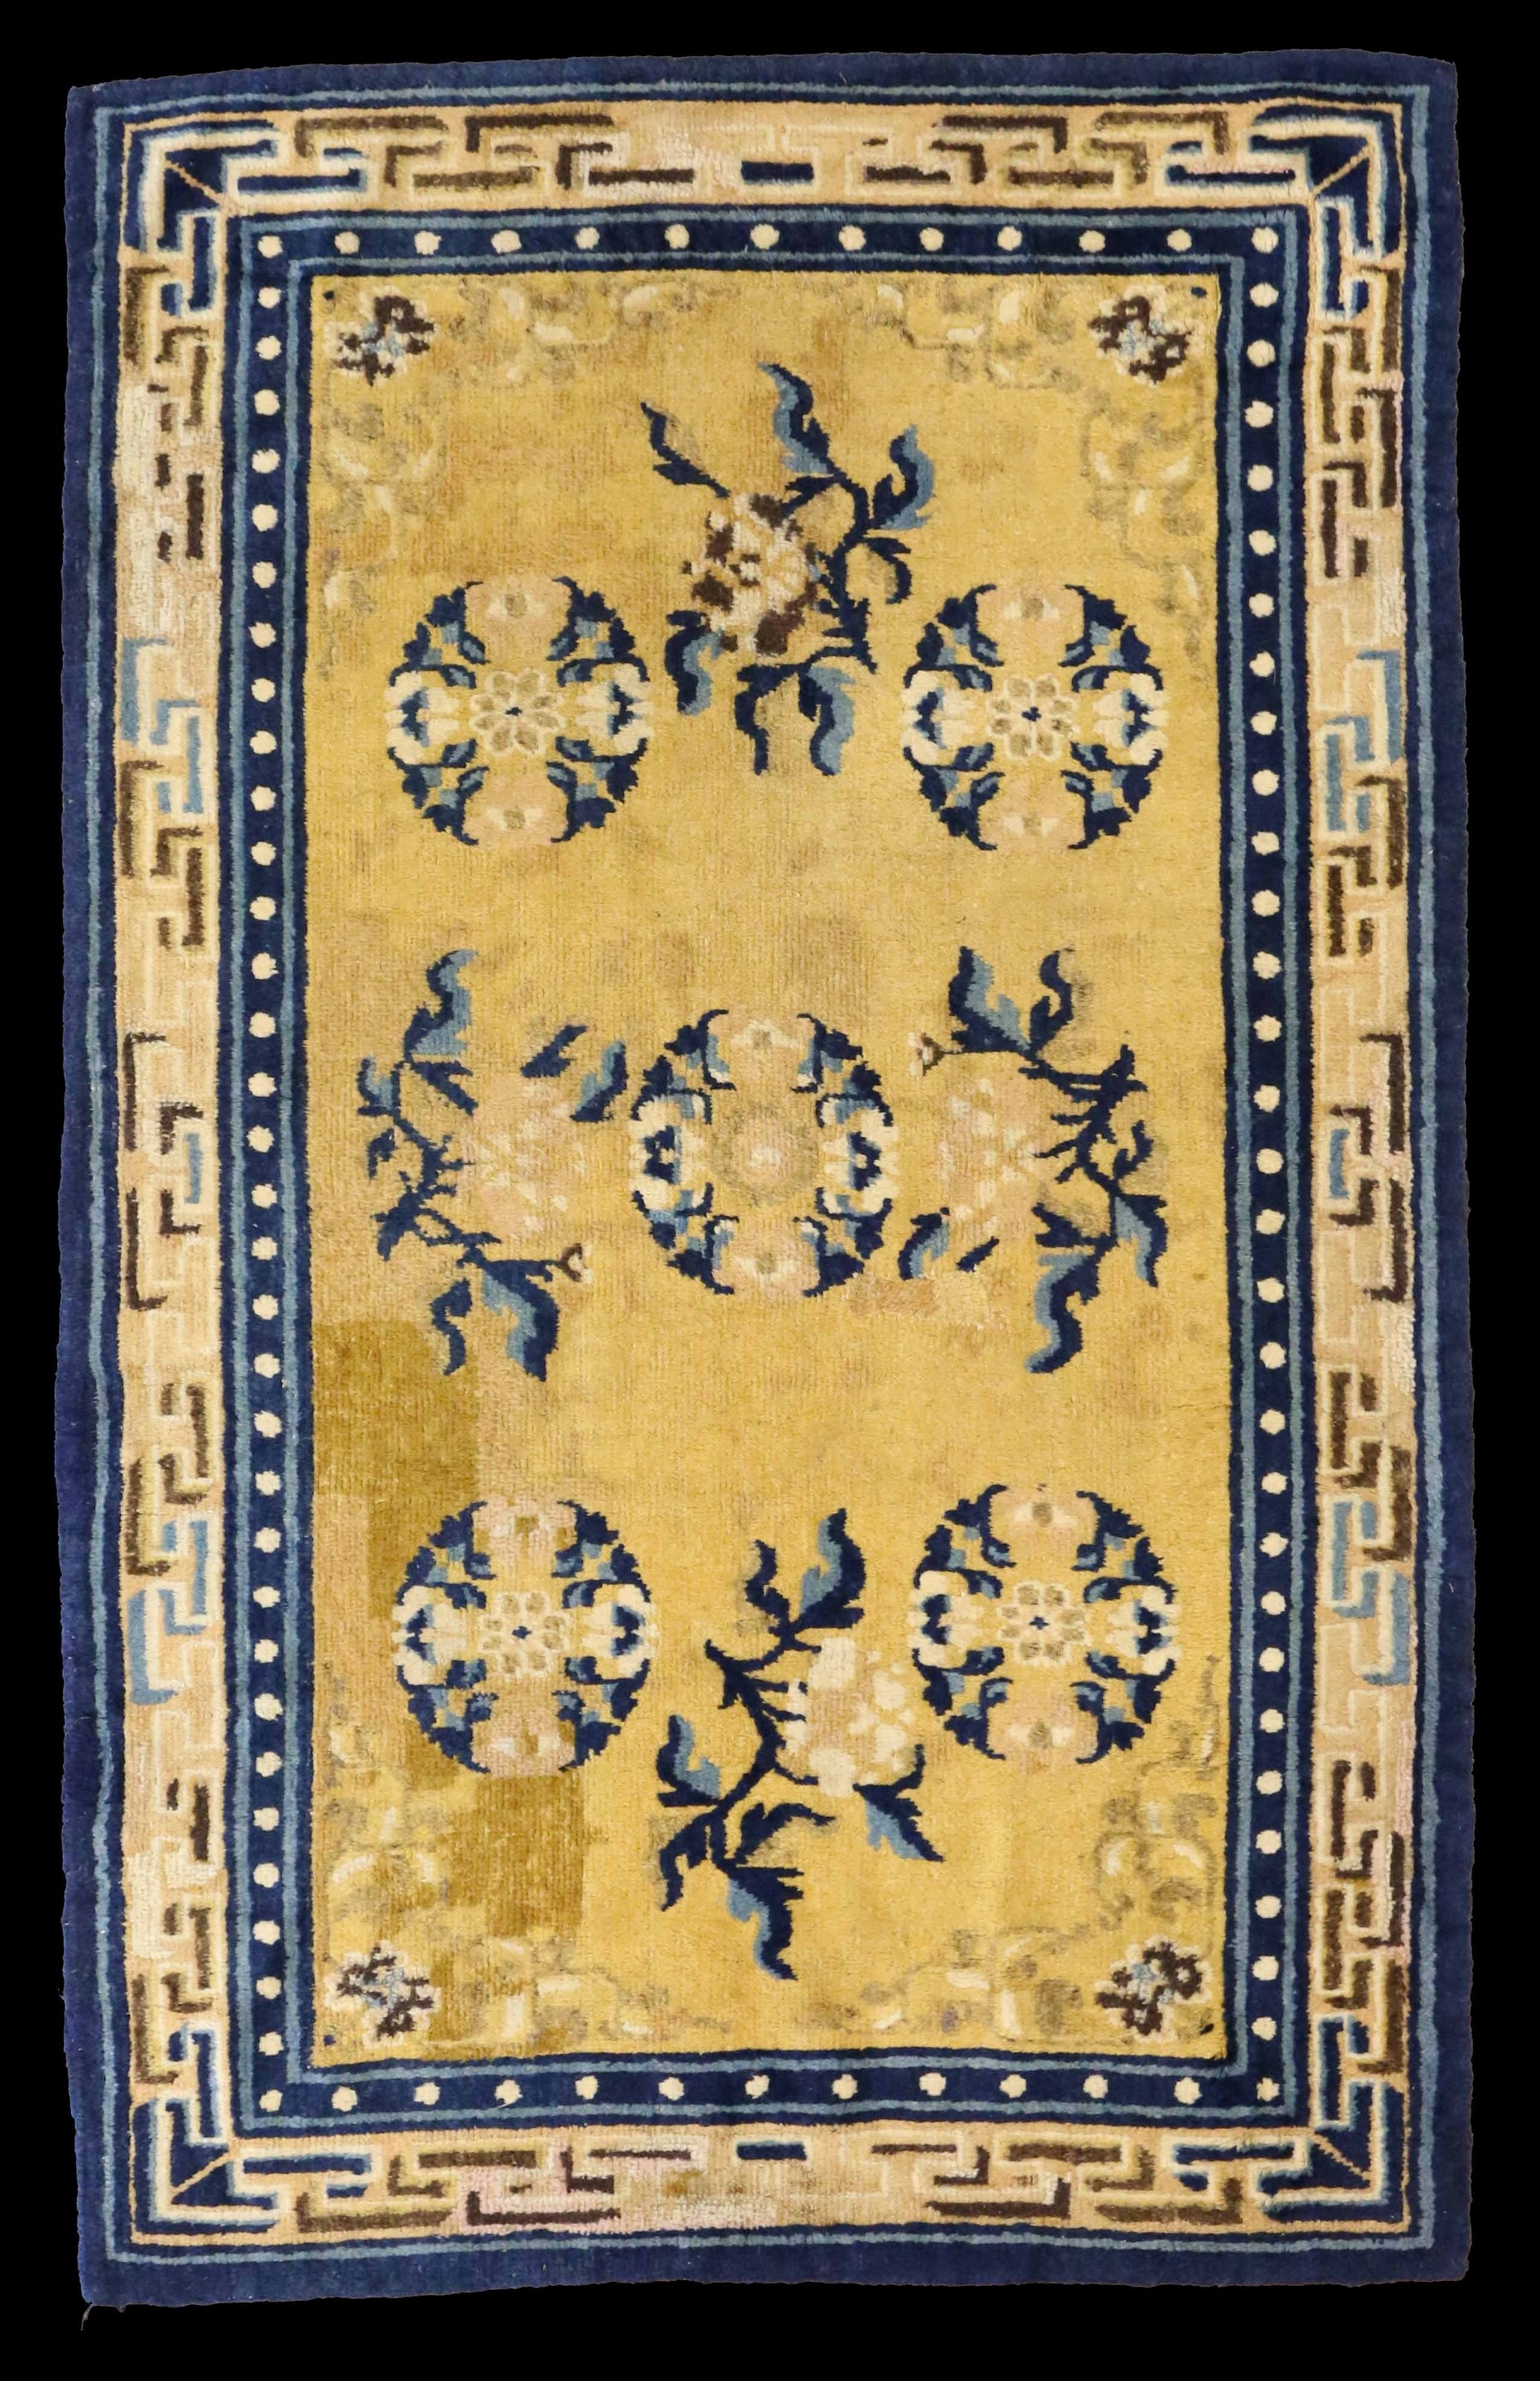 Antique Chinese Rugs The Uks Premier Antiques Portal Online Throughout Chinese Rugs (View 11 of 15)